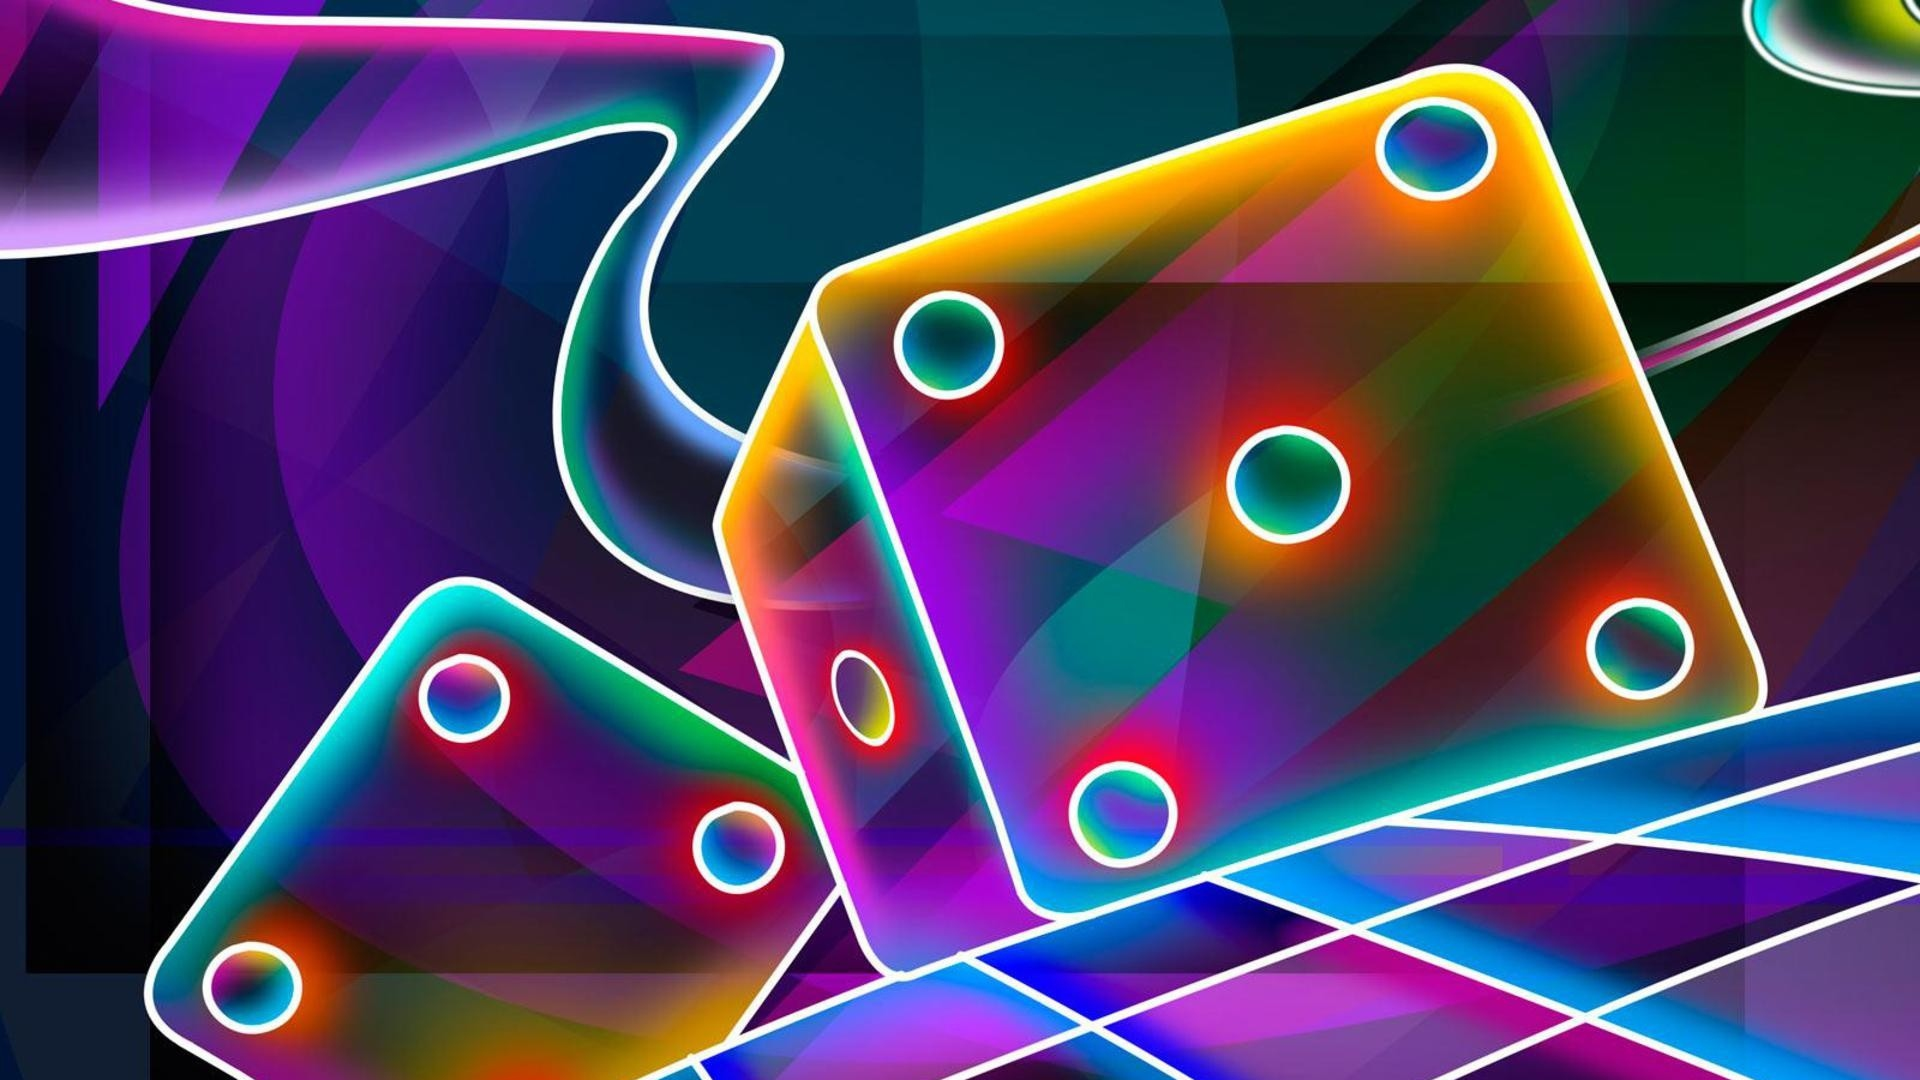 Download Wallpaper 1920x1080 3d Cube Dice Neon Full HD 1080p Background